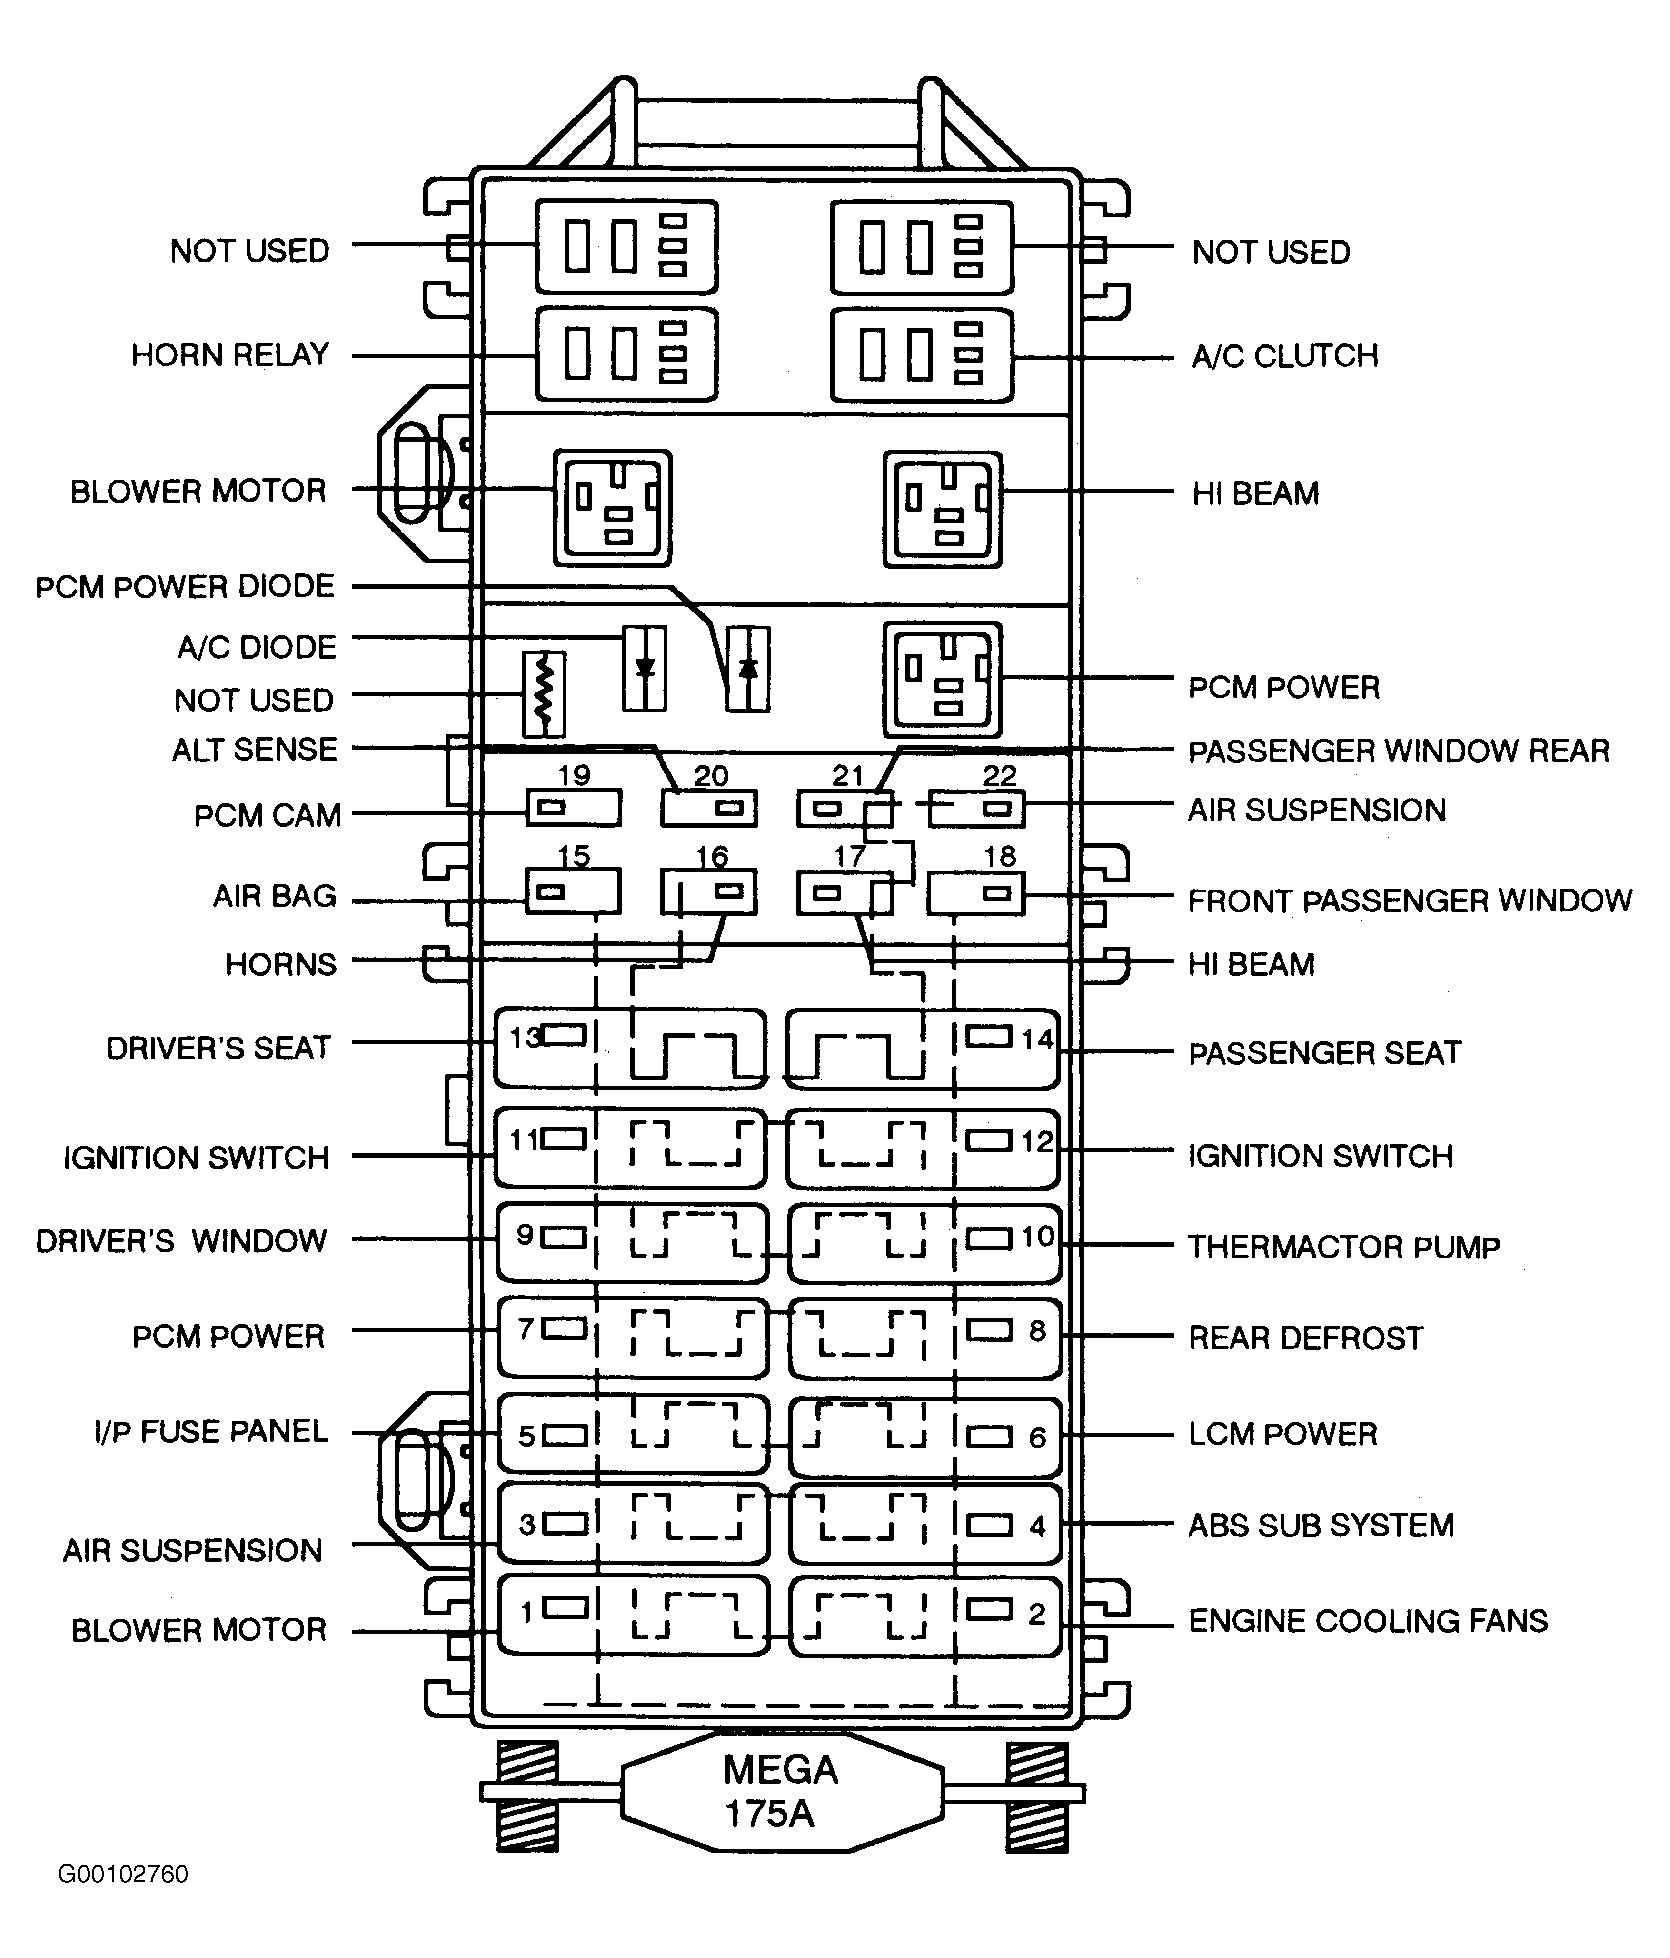 hight resolution of 98 lincoln fuse box